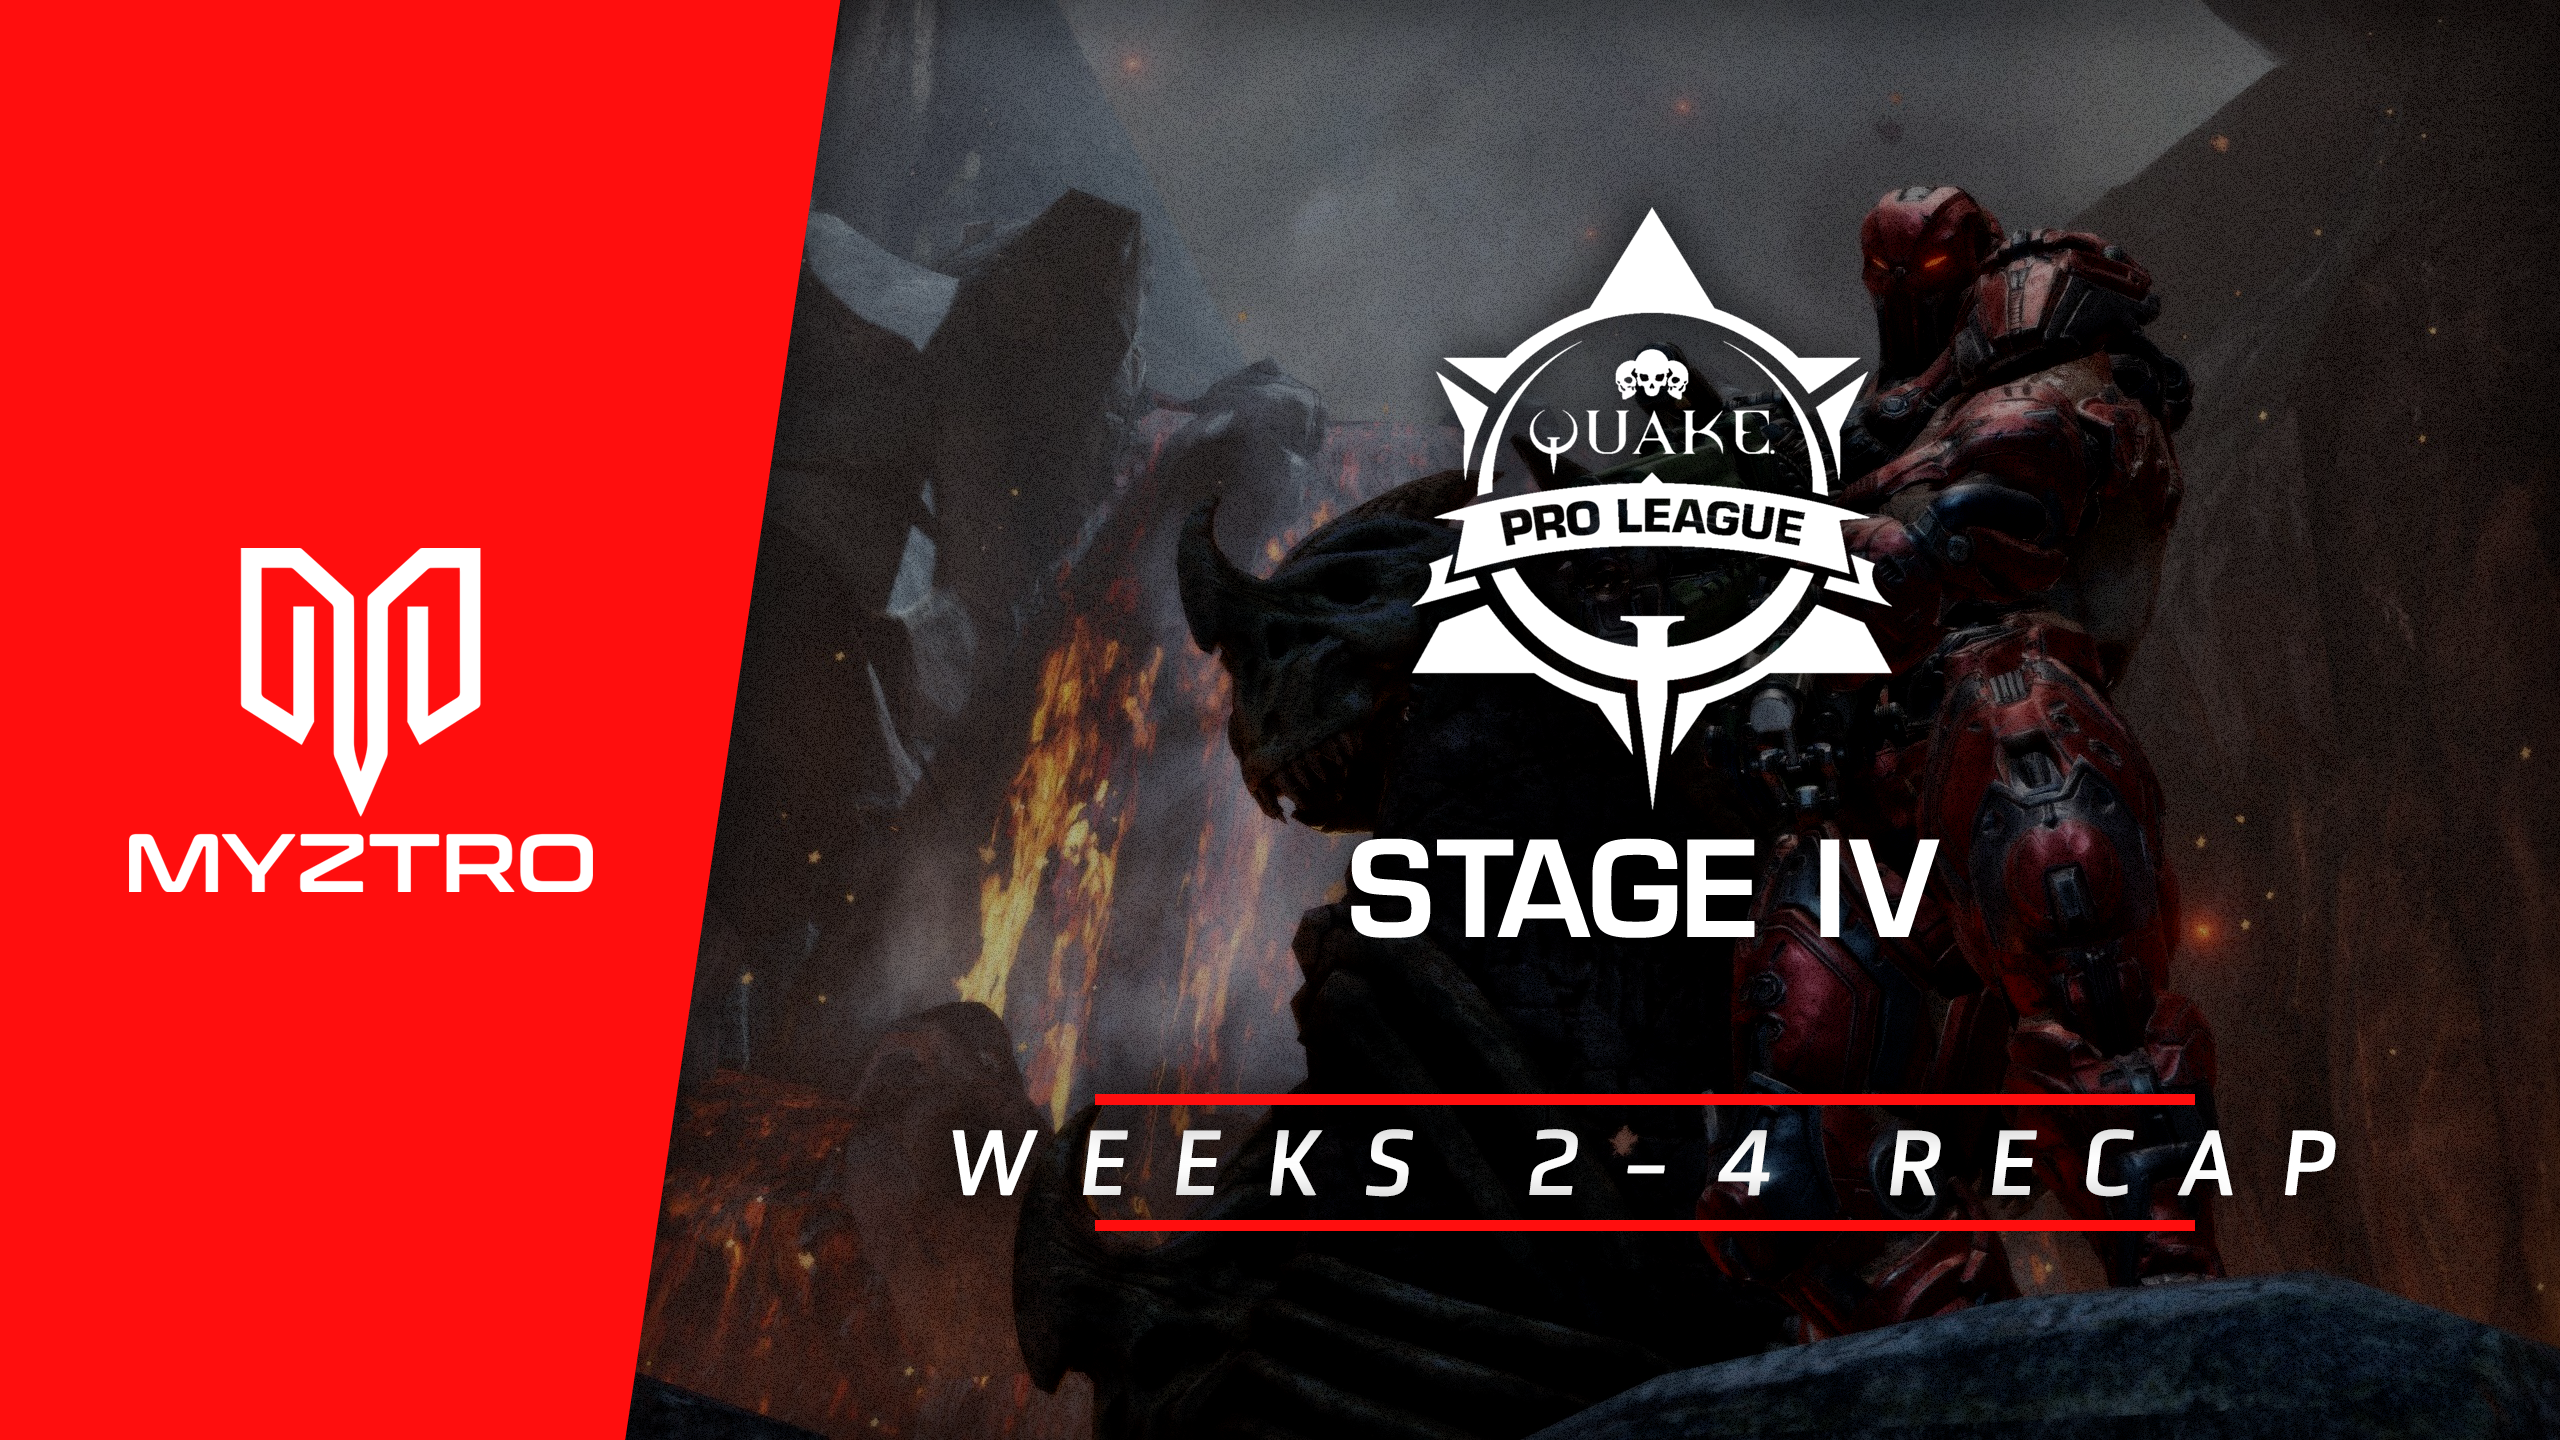 Myztro QPL Recap: Stage 4 Weeks 2, 3, and 4